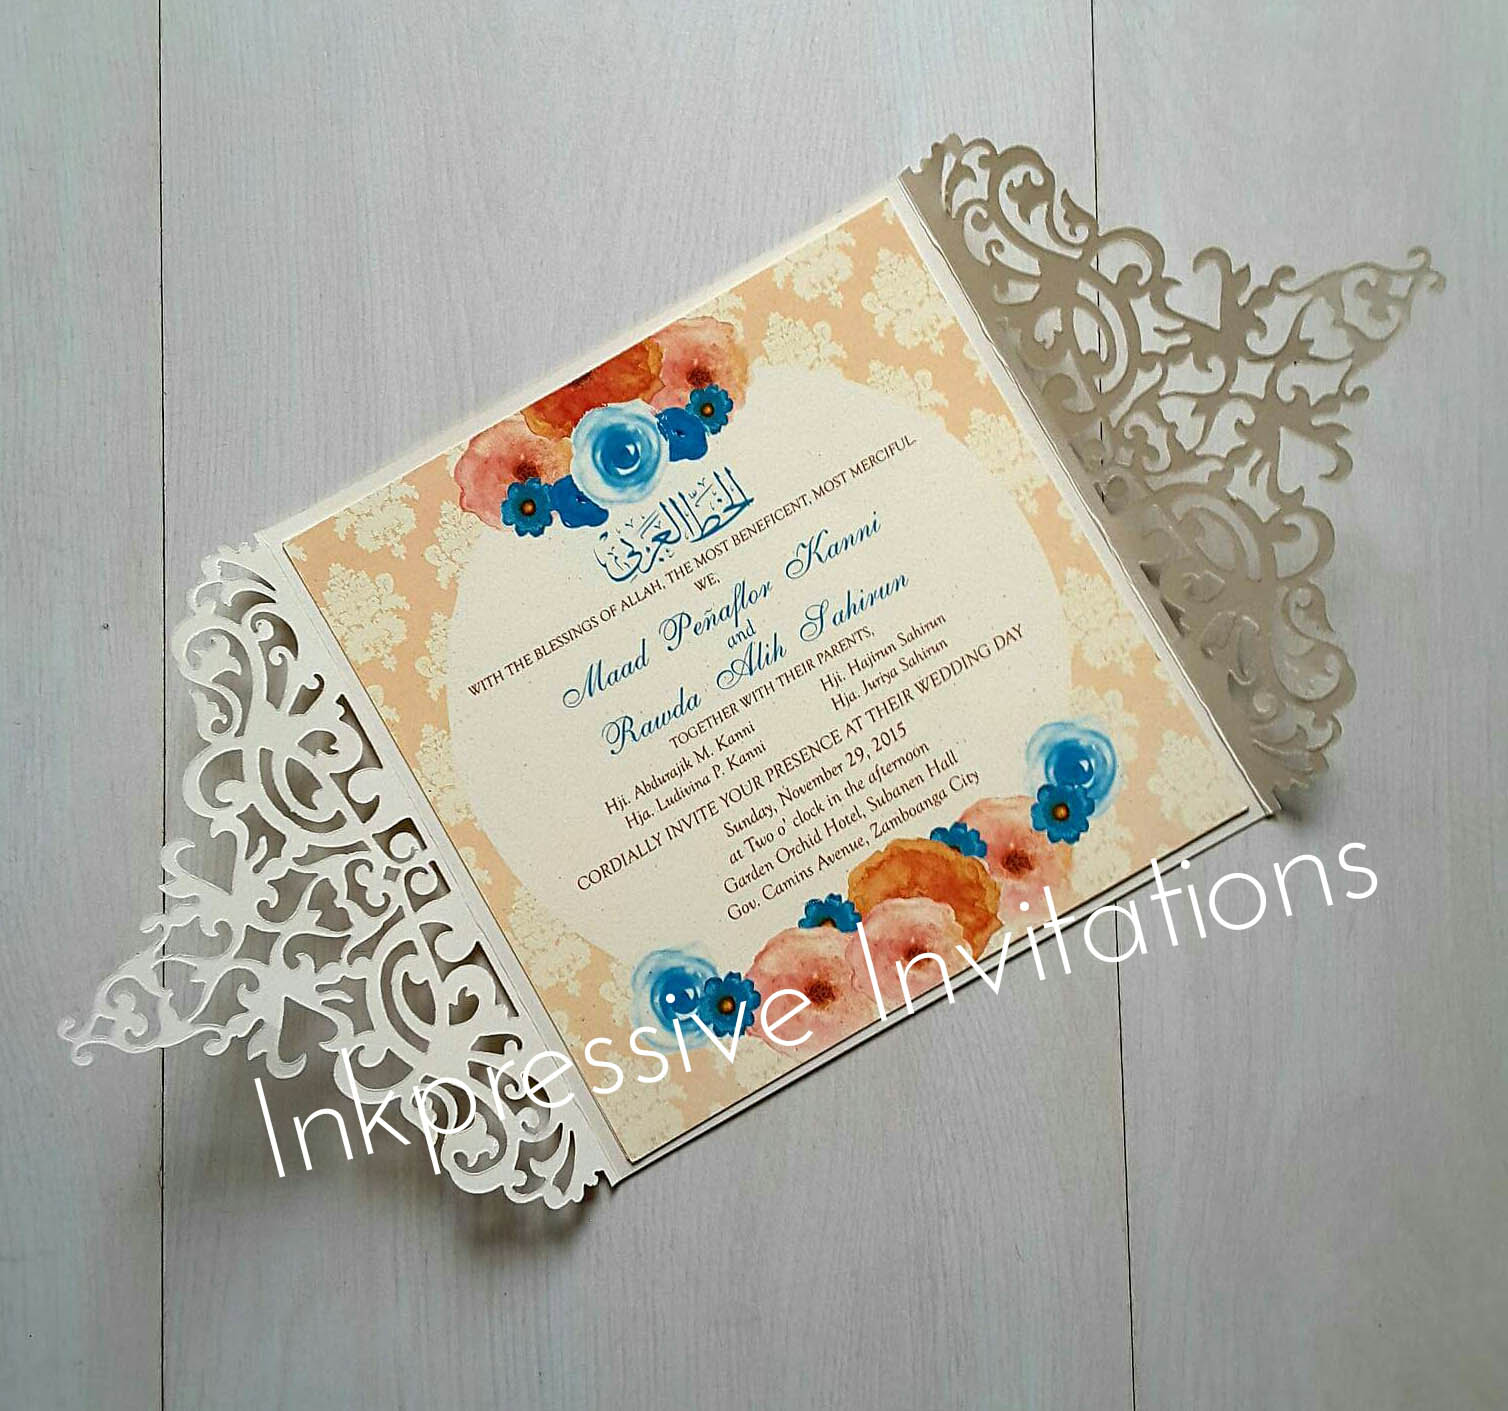 INKPRESSIVE INVITATIONS: Wedding Invitations by Inkpressive